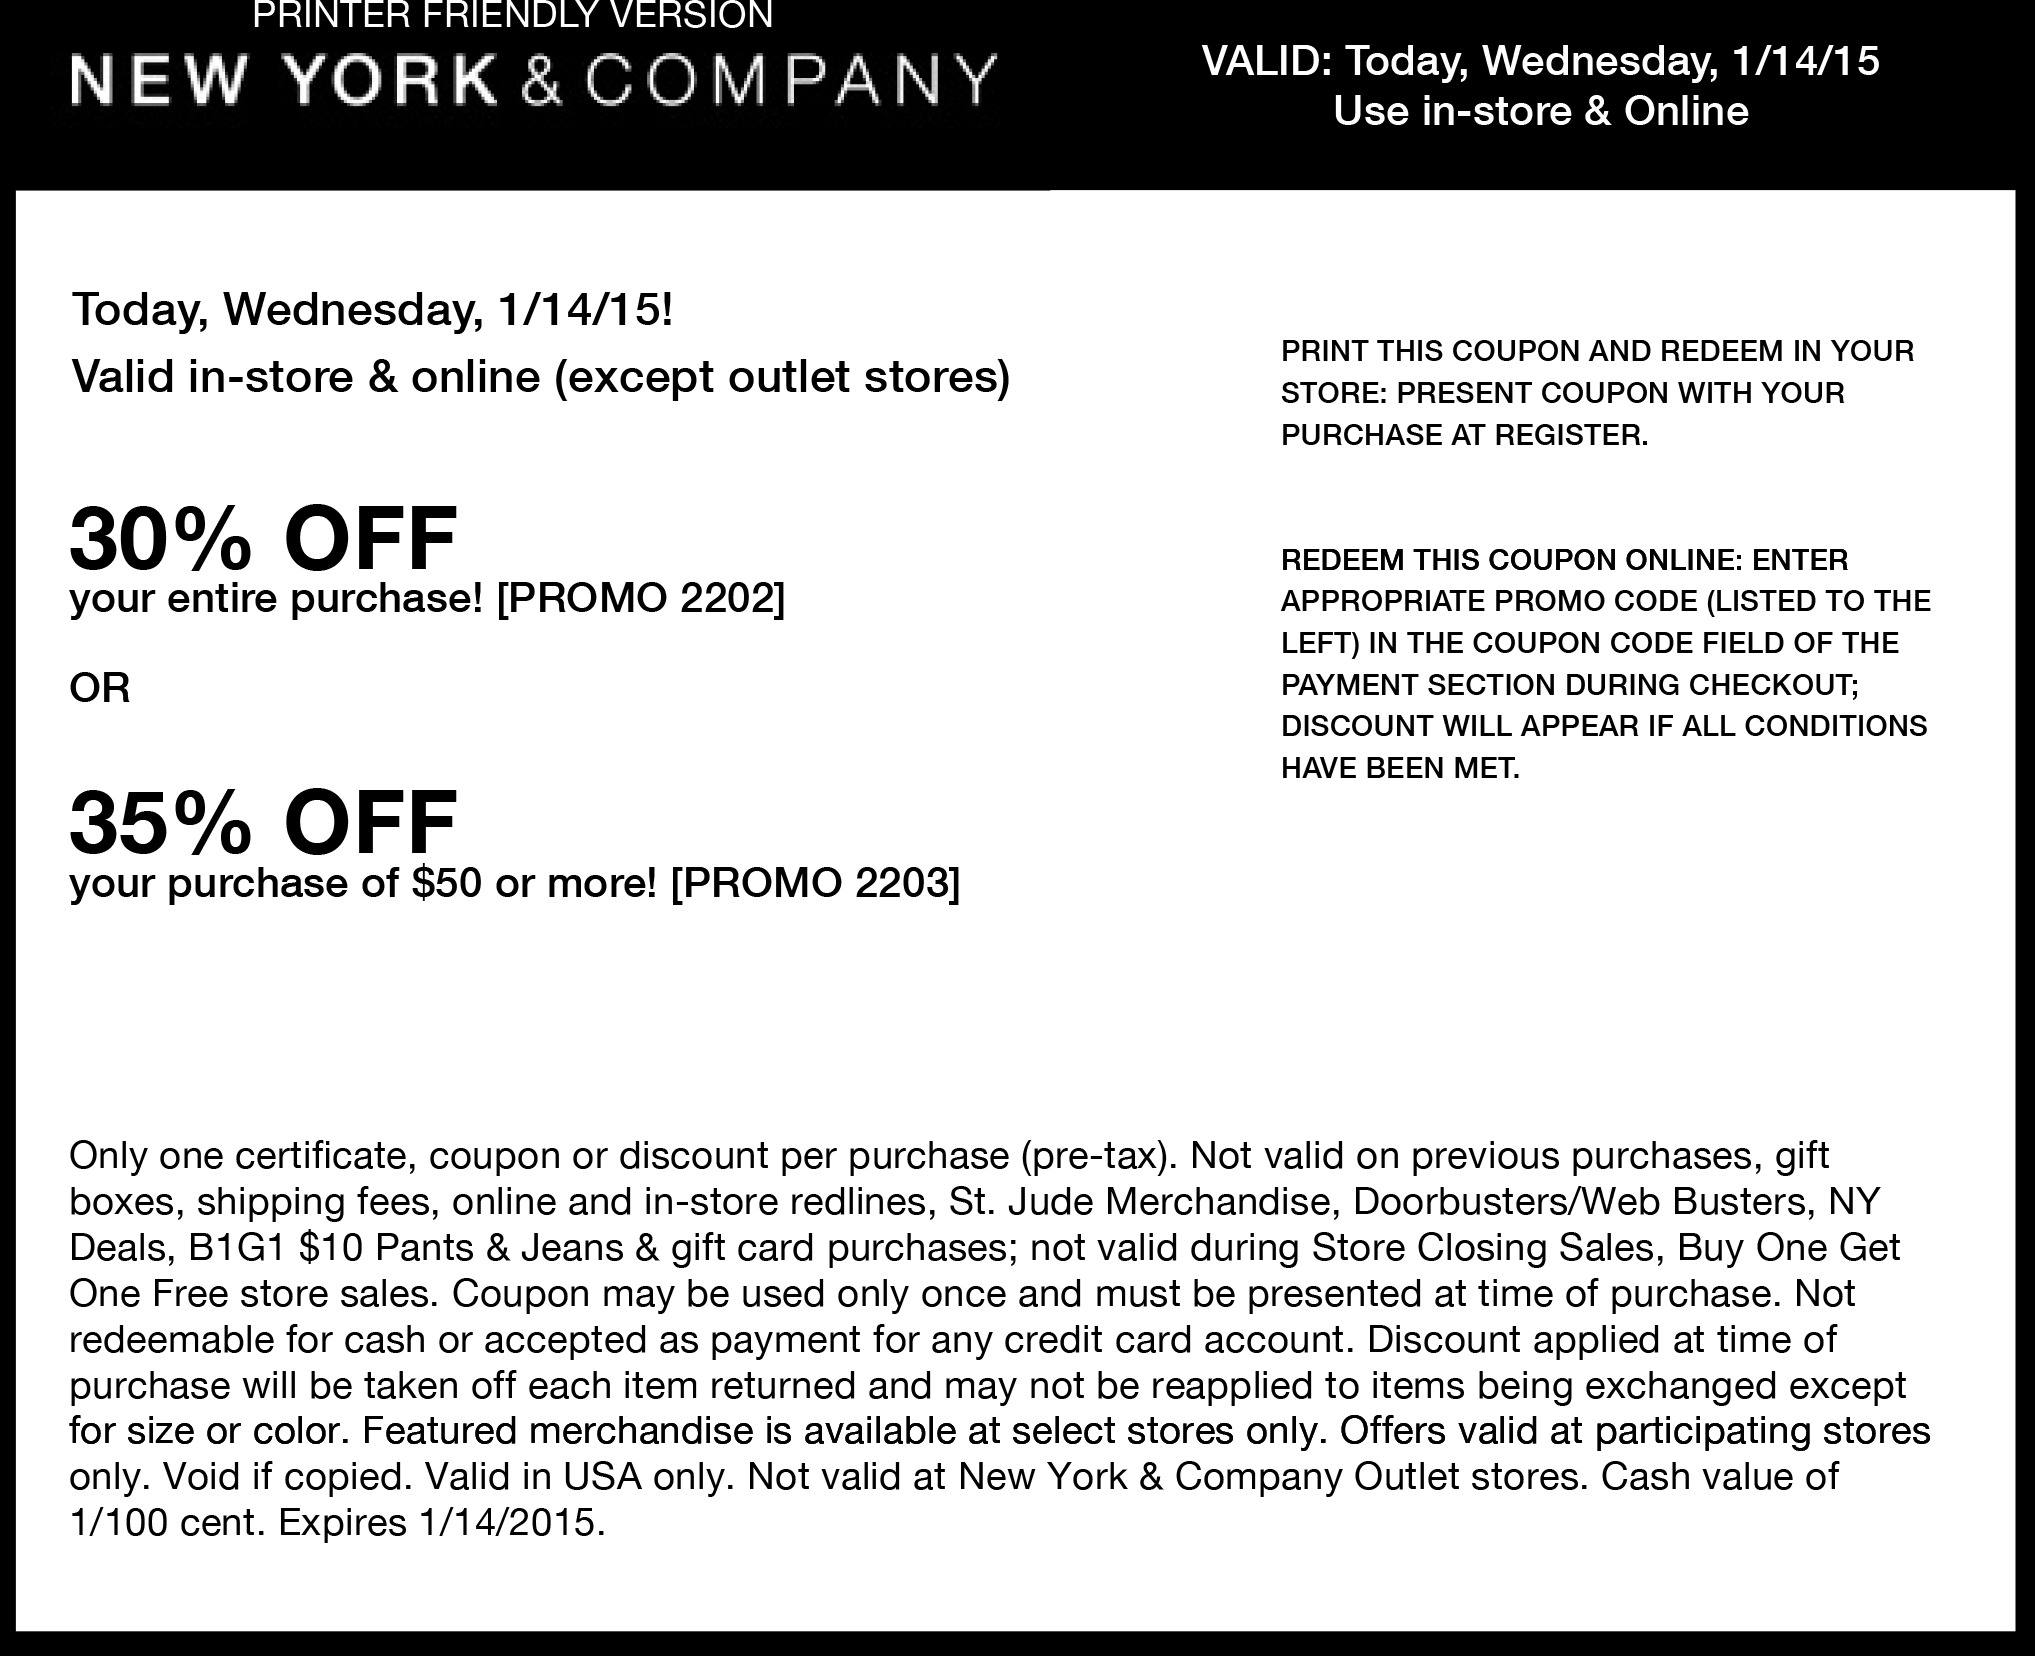 New York & Company Coupon December 2016 30-35% off today at New York & Company, or online via promo code 2202